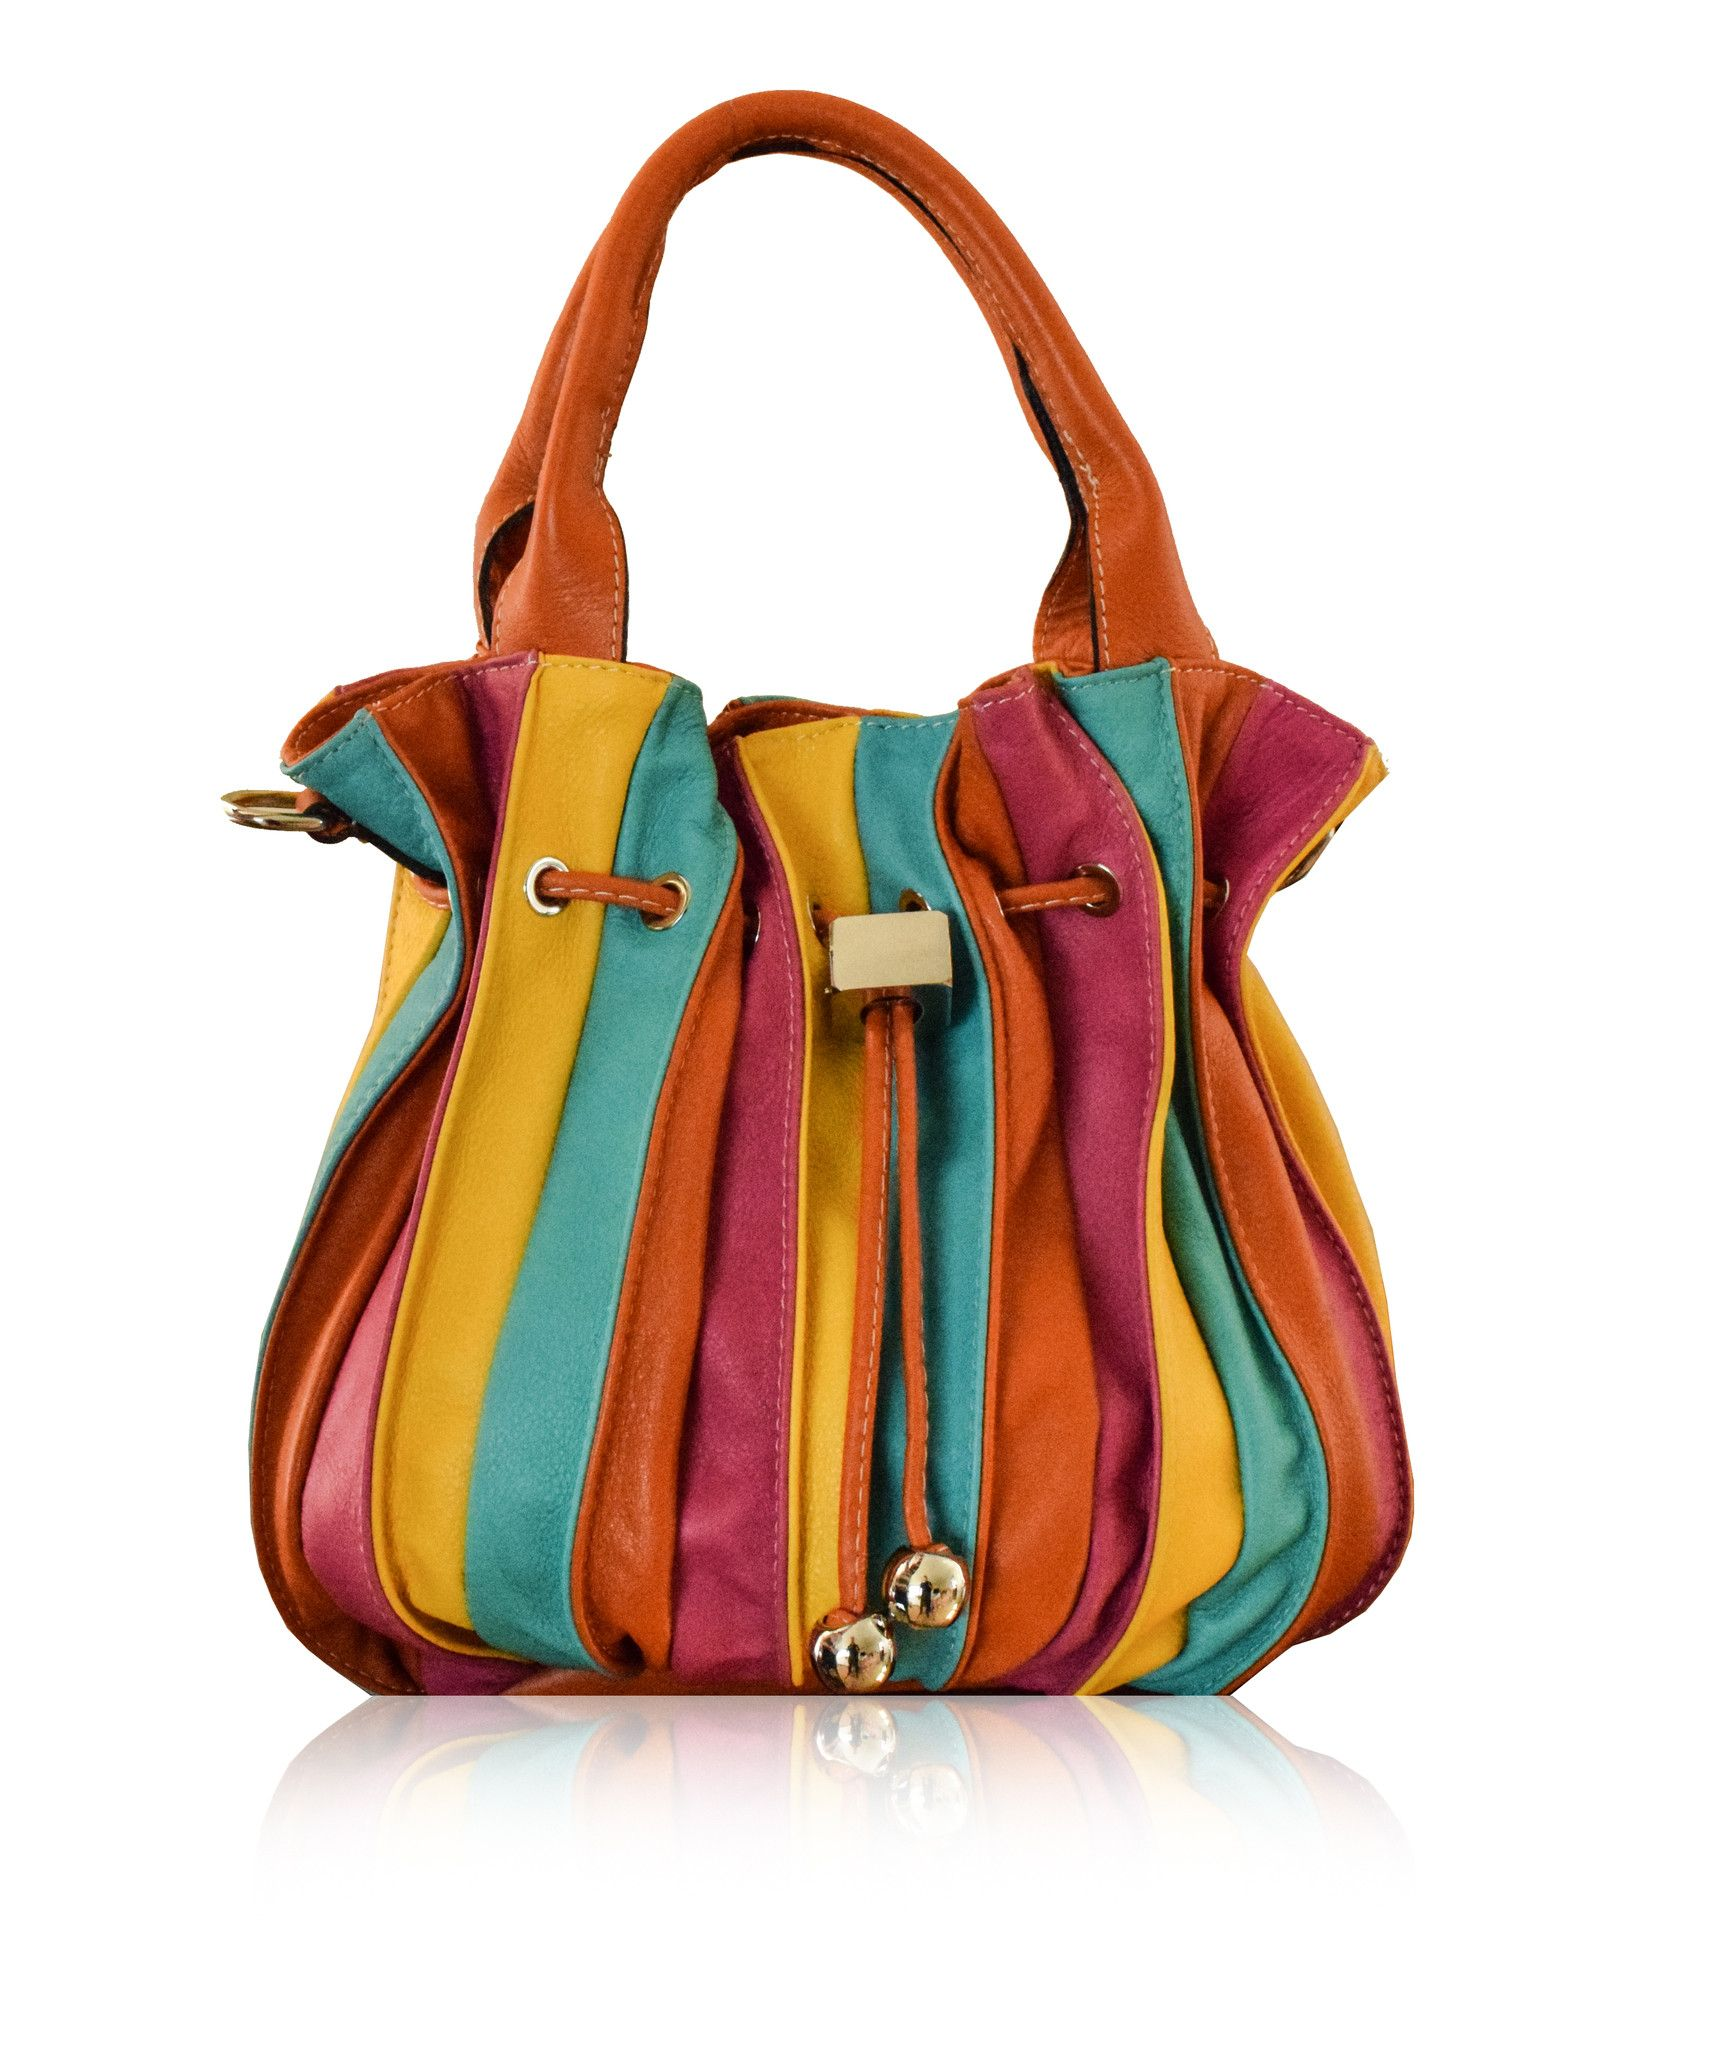 Toscana Soft Multi Colour Leather Tote Bag From Florence Collection Firenze